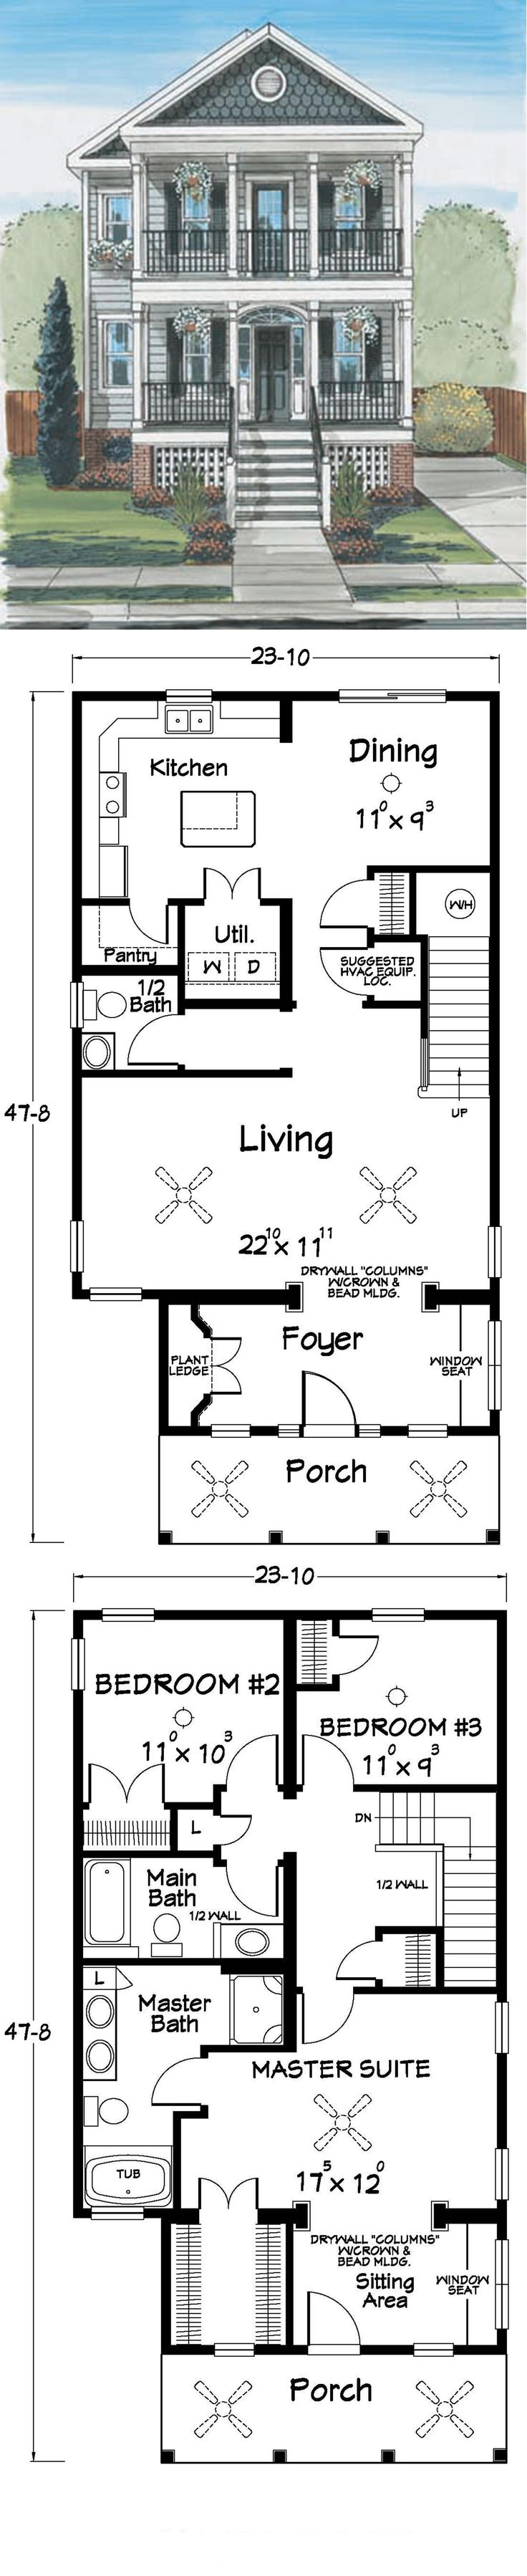 Free Printable Floor Plan Templates